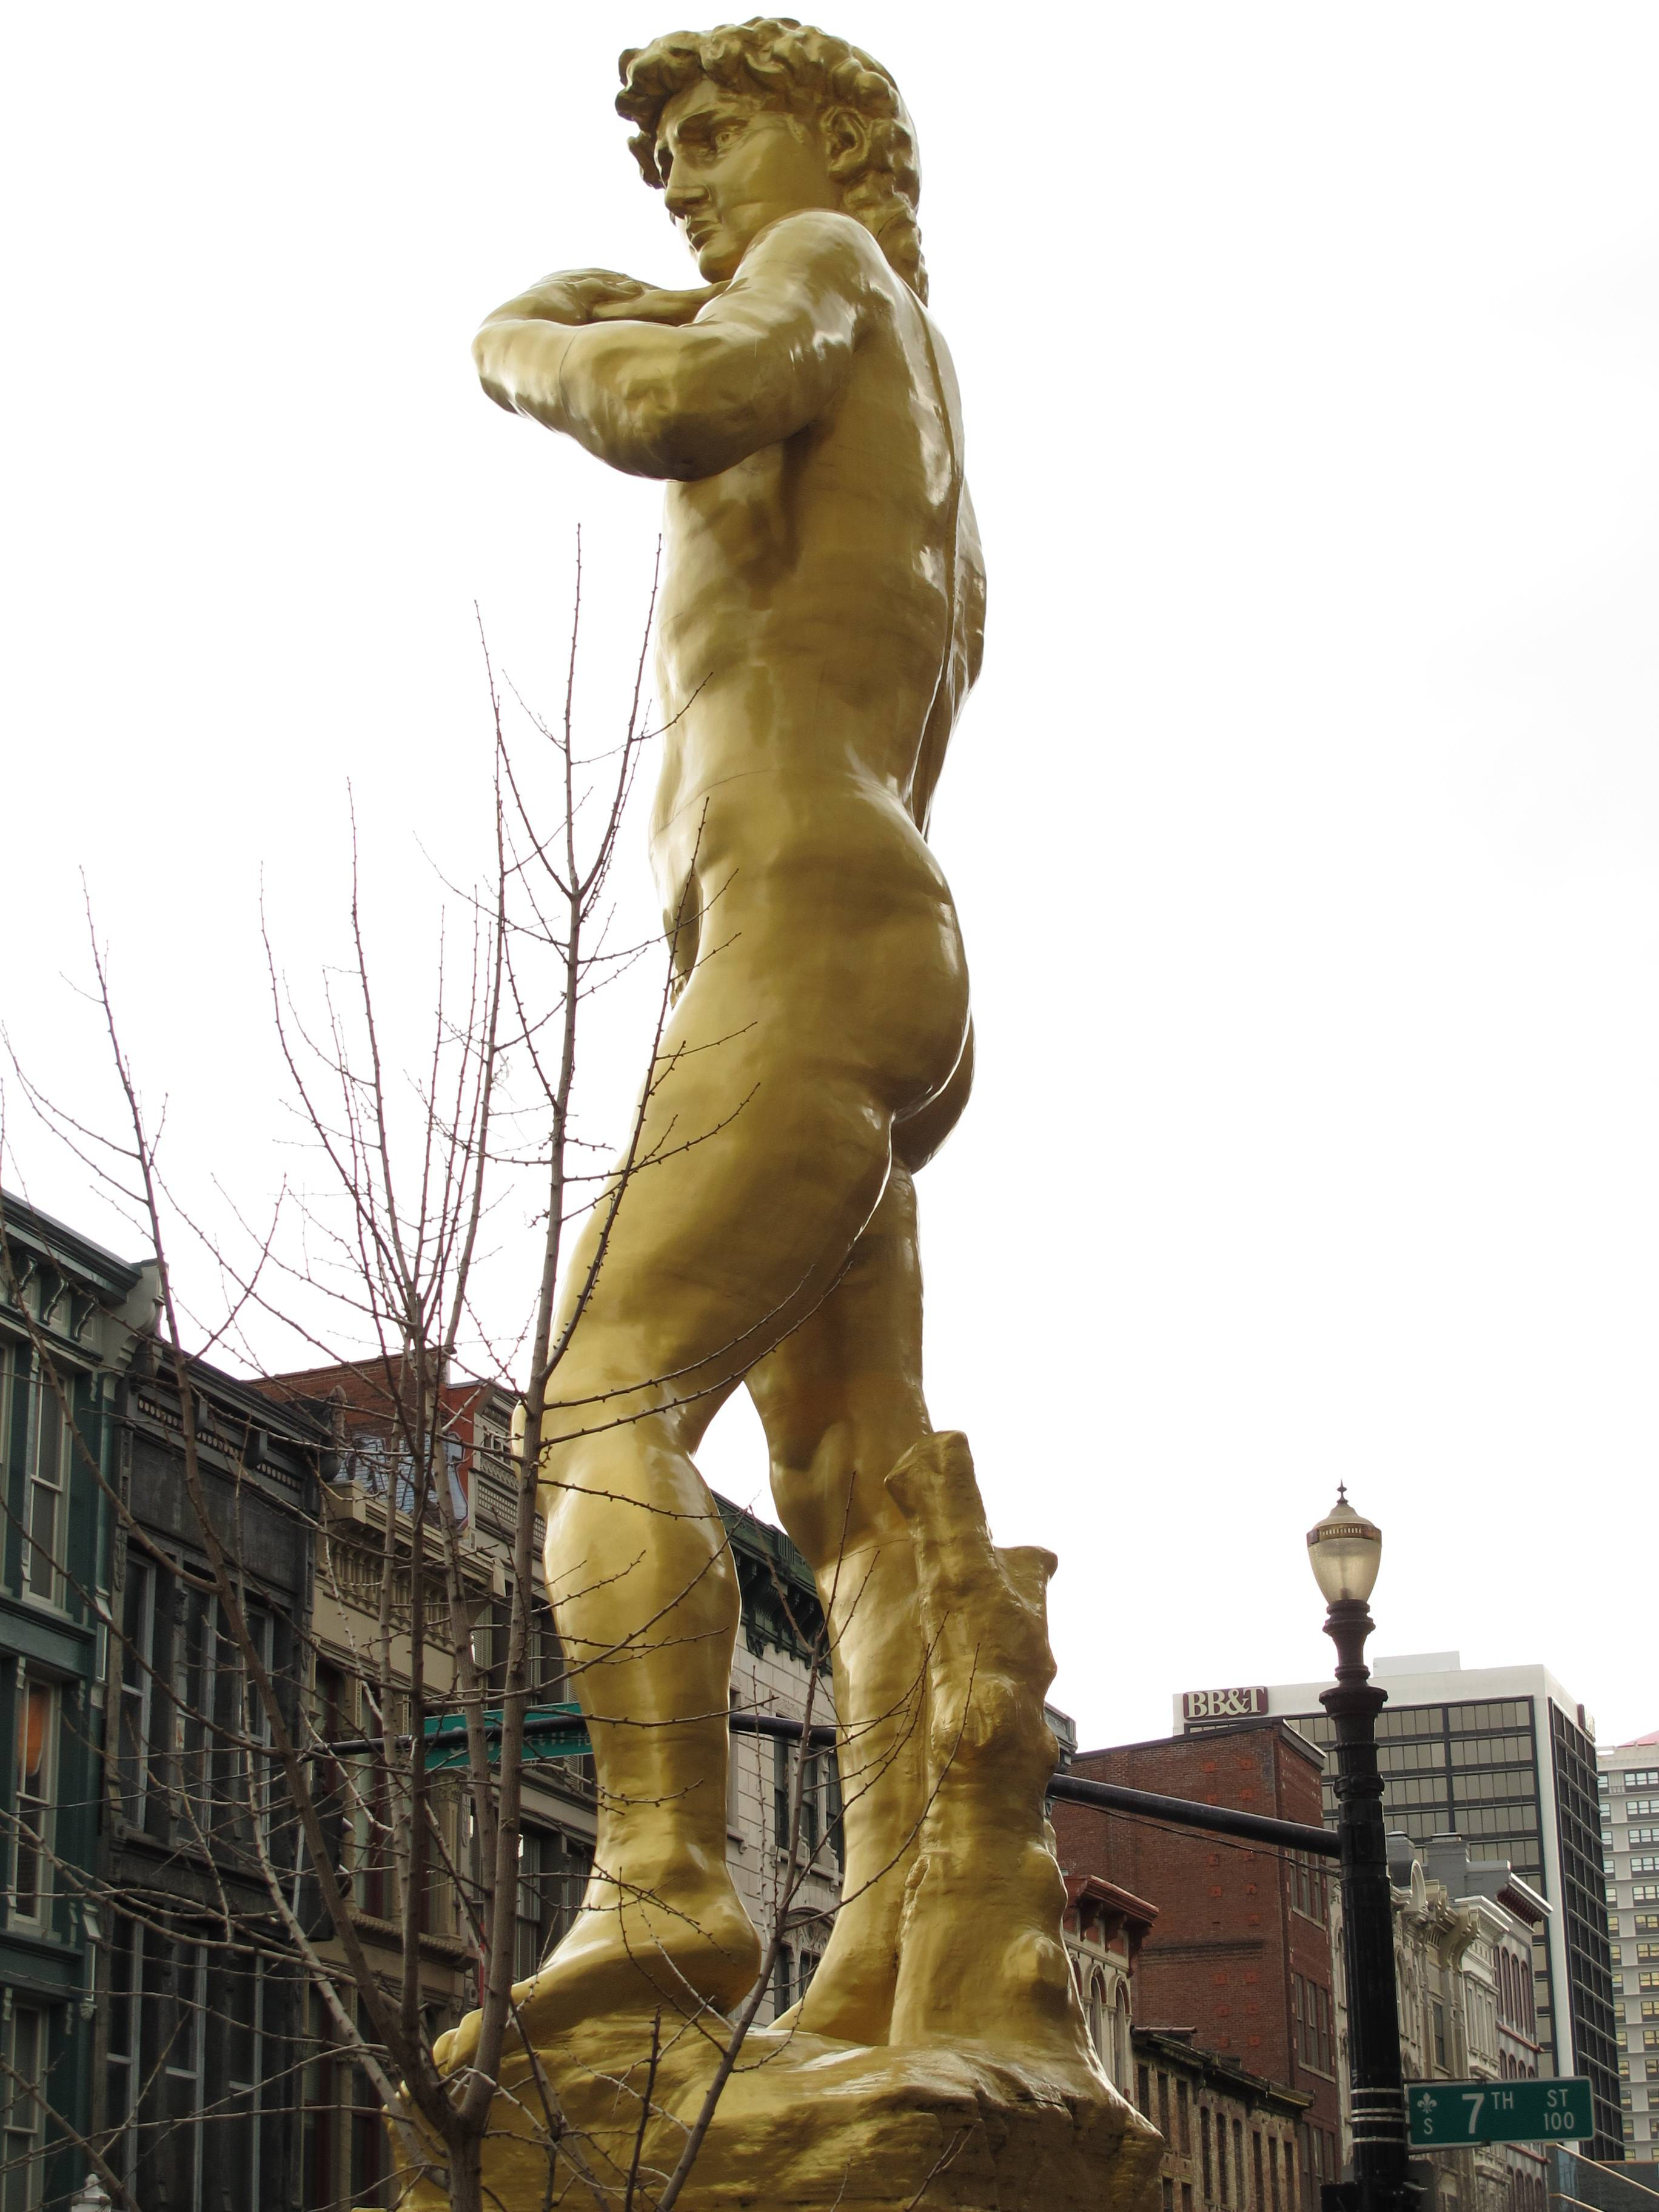 This 37-foot-tall replica of Michelangelo's David stands outside the 21c Museum Hotel, which showcases contemporary art in 9,000 square feet of exhibition space in downtown Louisville, Ky. The David replica was created by a Turkish artist and is made of steel and fiberglass and was painted gold.